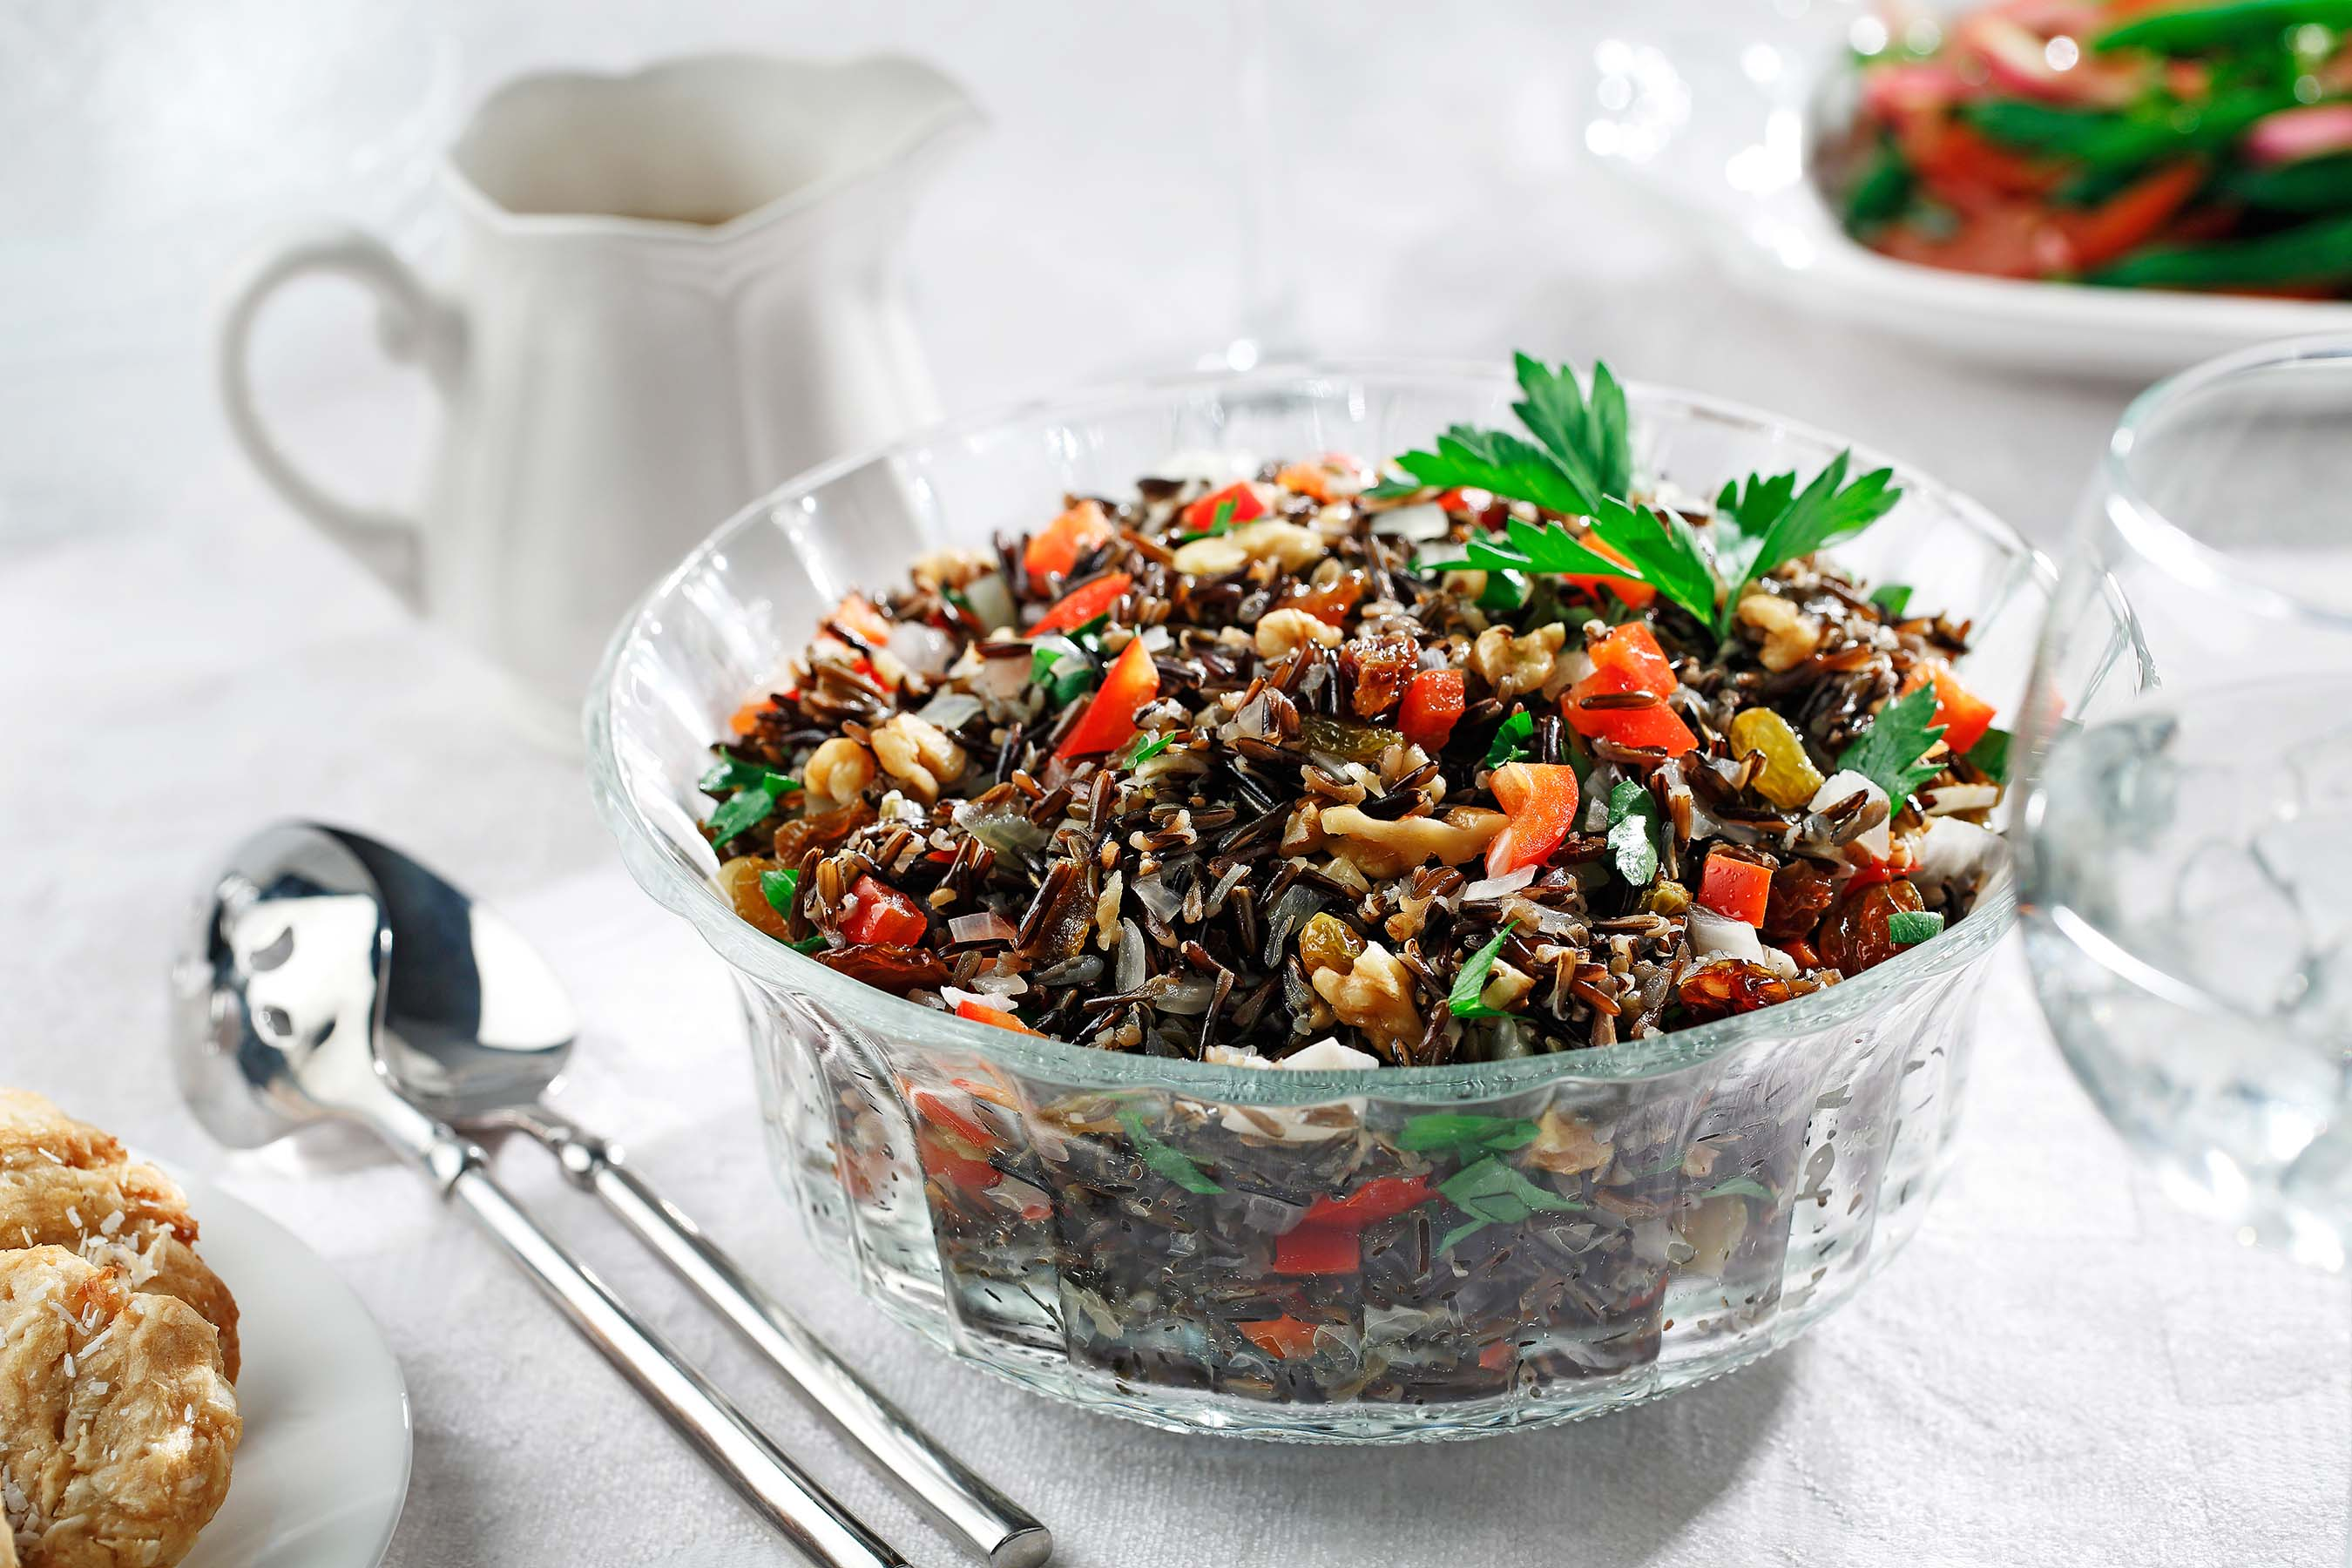 Using nutrient-packed wild rice with the Latin tastes of bell peppers, walnuts and raisins gives this dish a range of health benefits plus a rainbow of visual appeal. Canola oil helps the flavors meld.